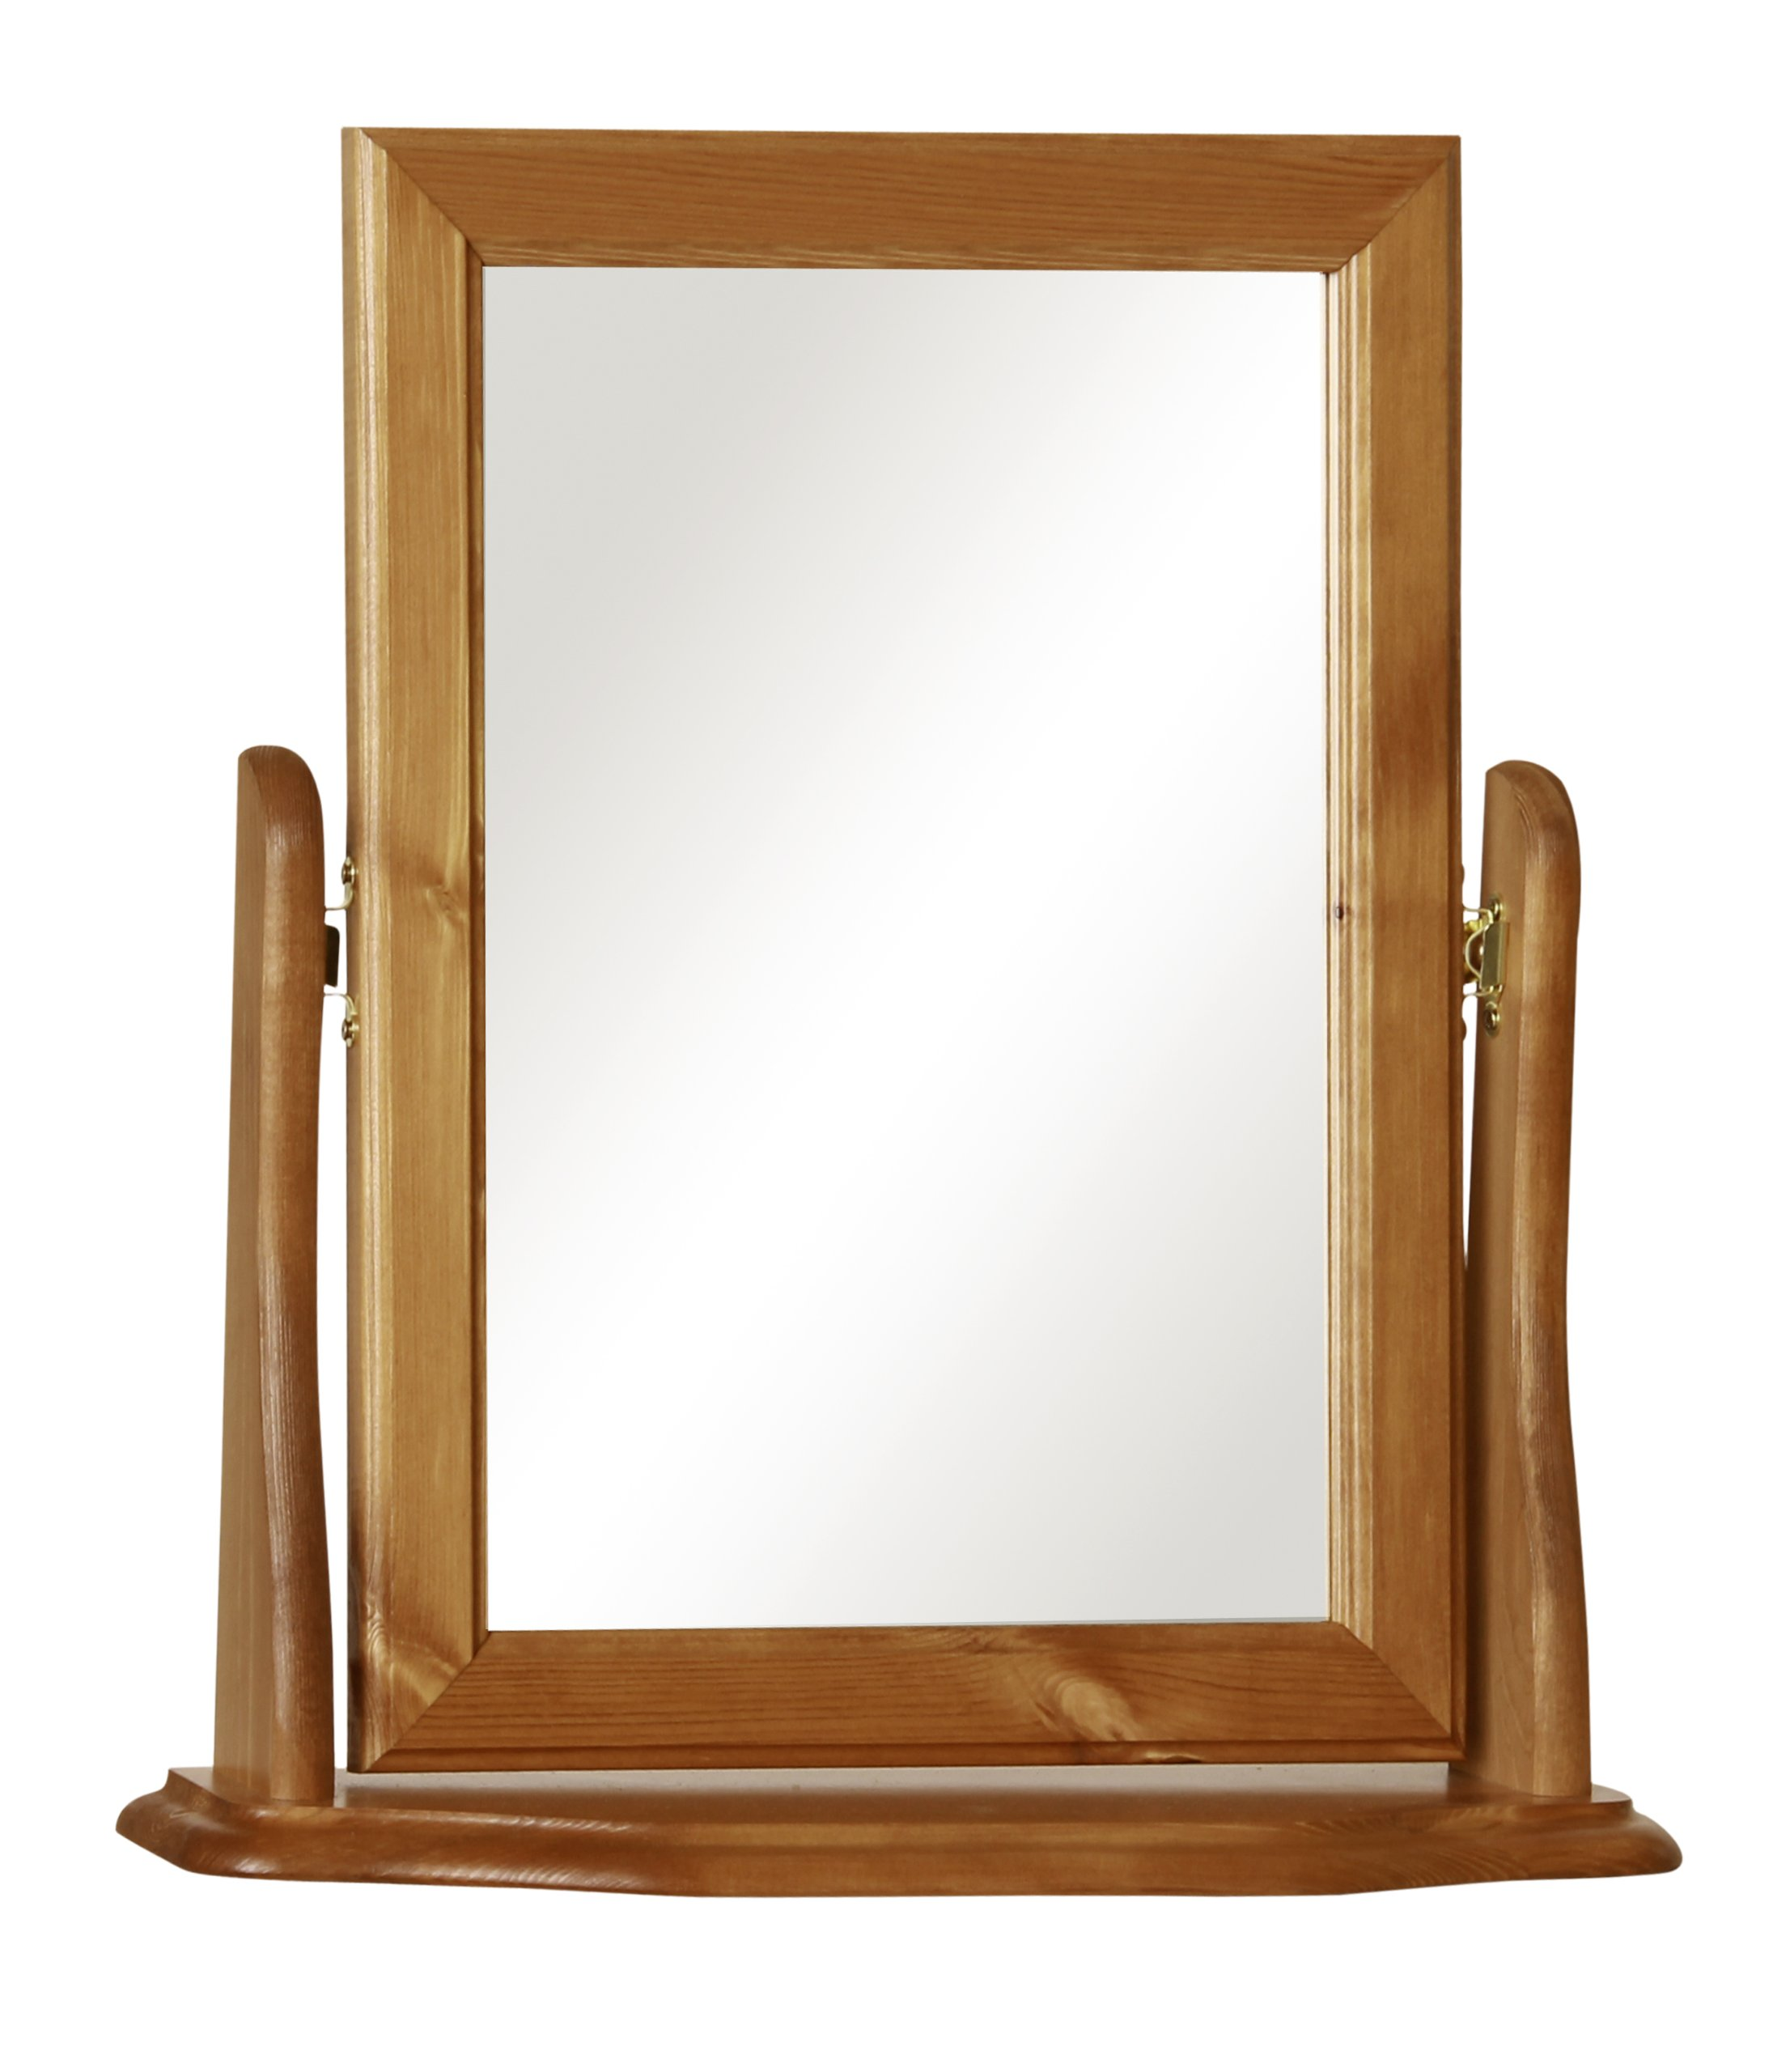 Furniture To Go Copenhagen Dressing Table Mirror 47 X 49 X 14 Cm